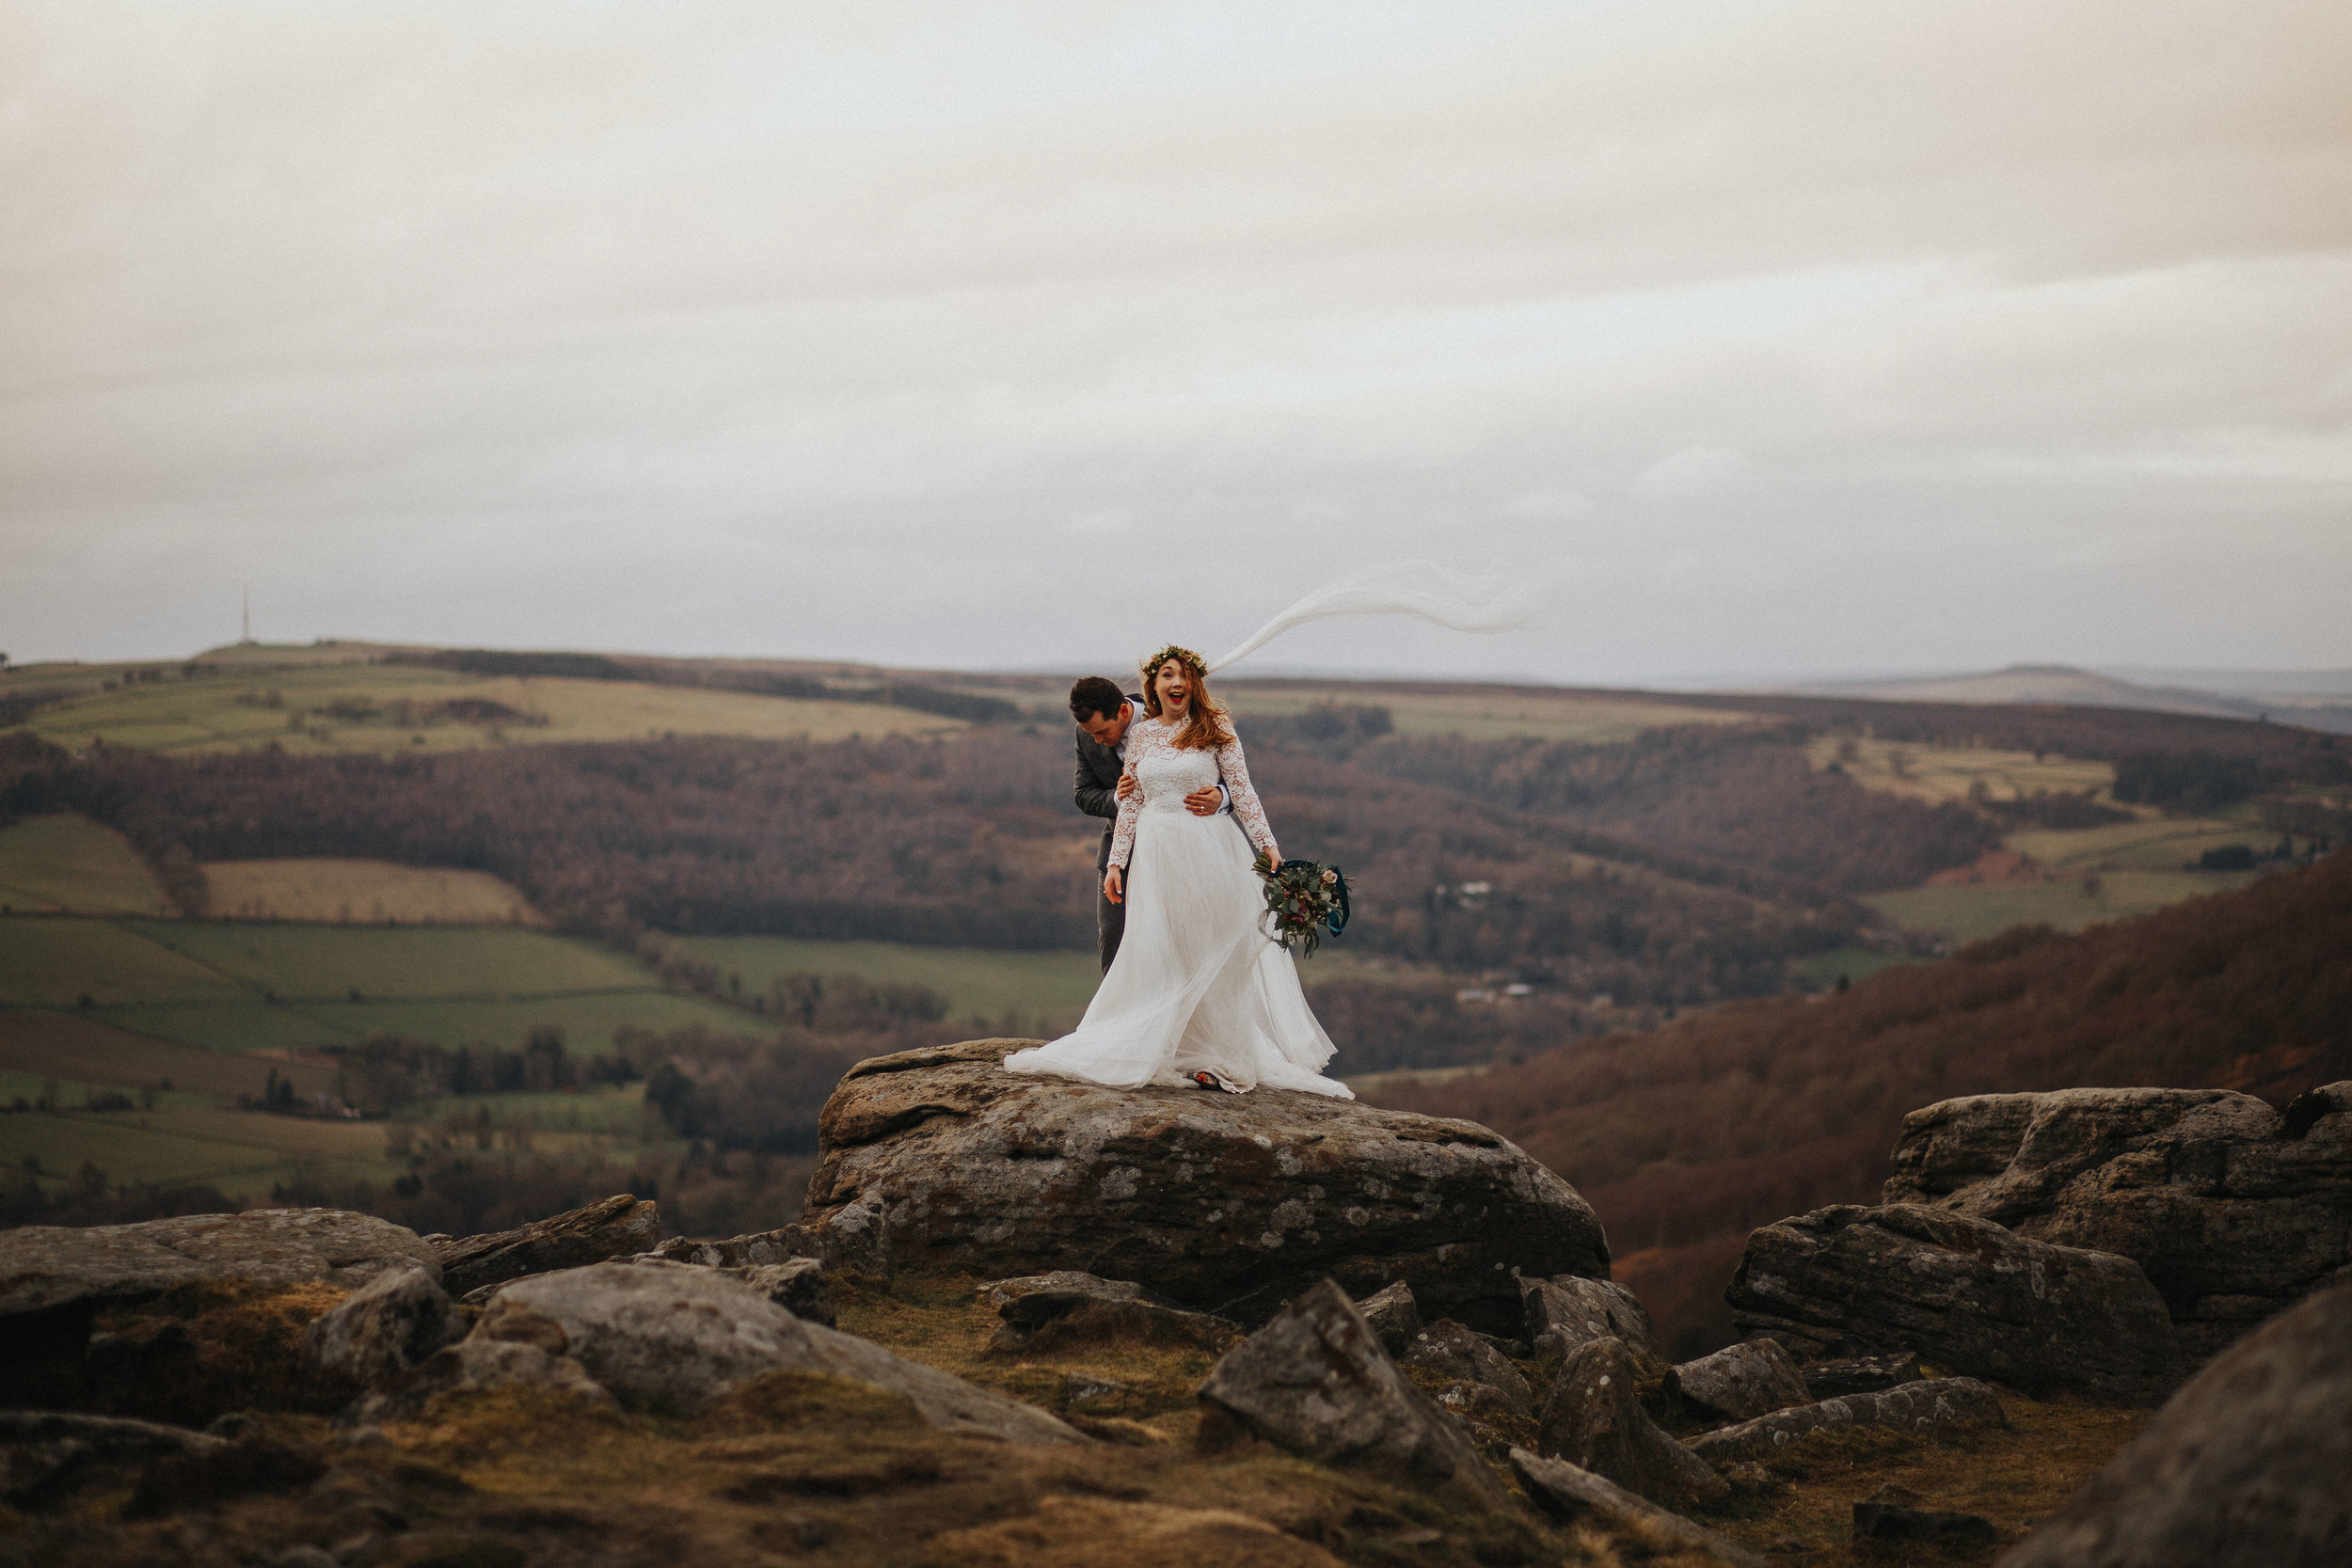 Rosie-peak district-bride-bespoke-long sleeved-lace-tulle-winter-wedding-dress-matlock-susanna-greening-19